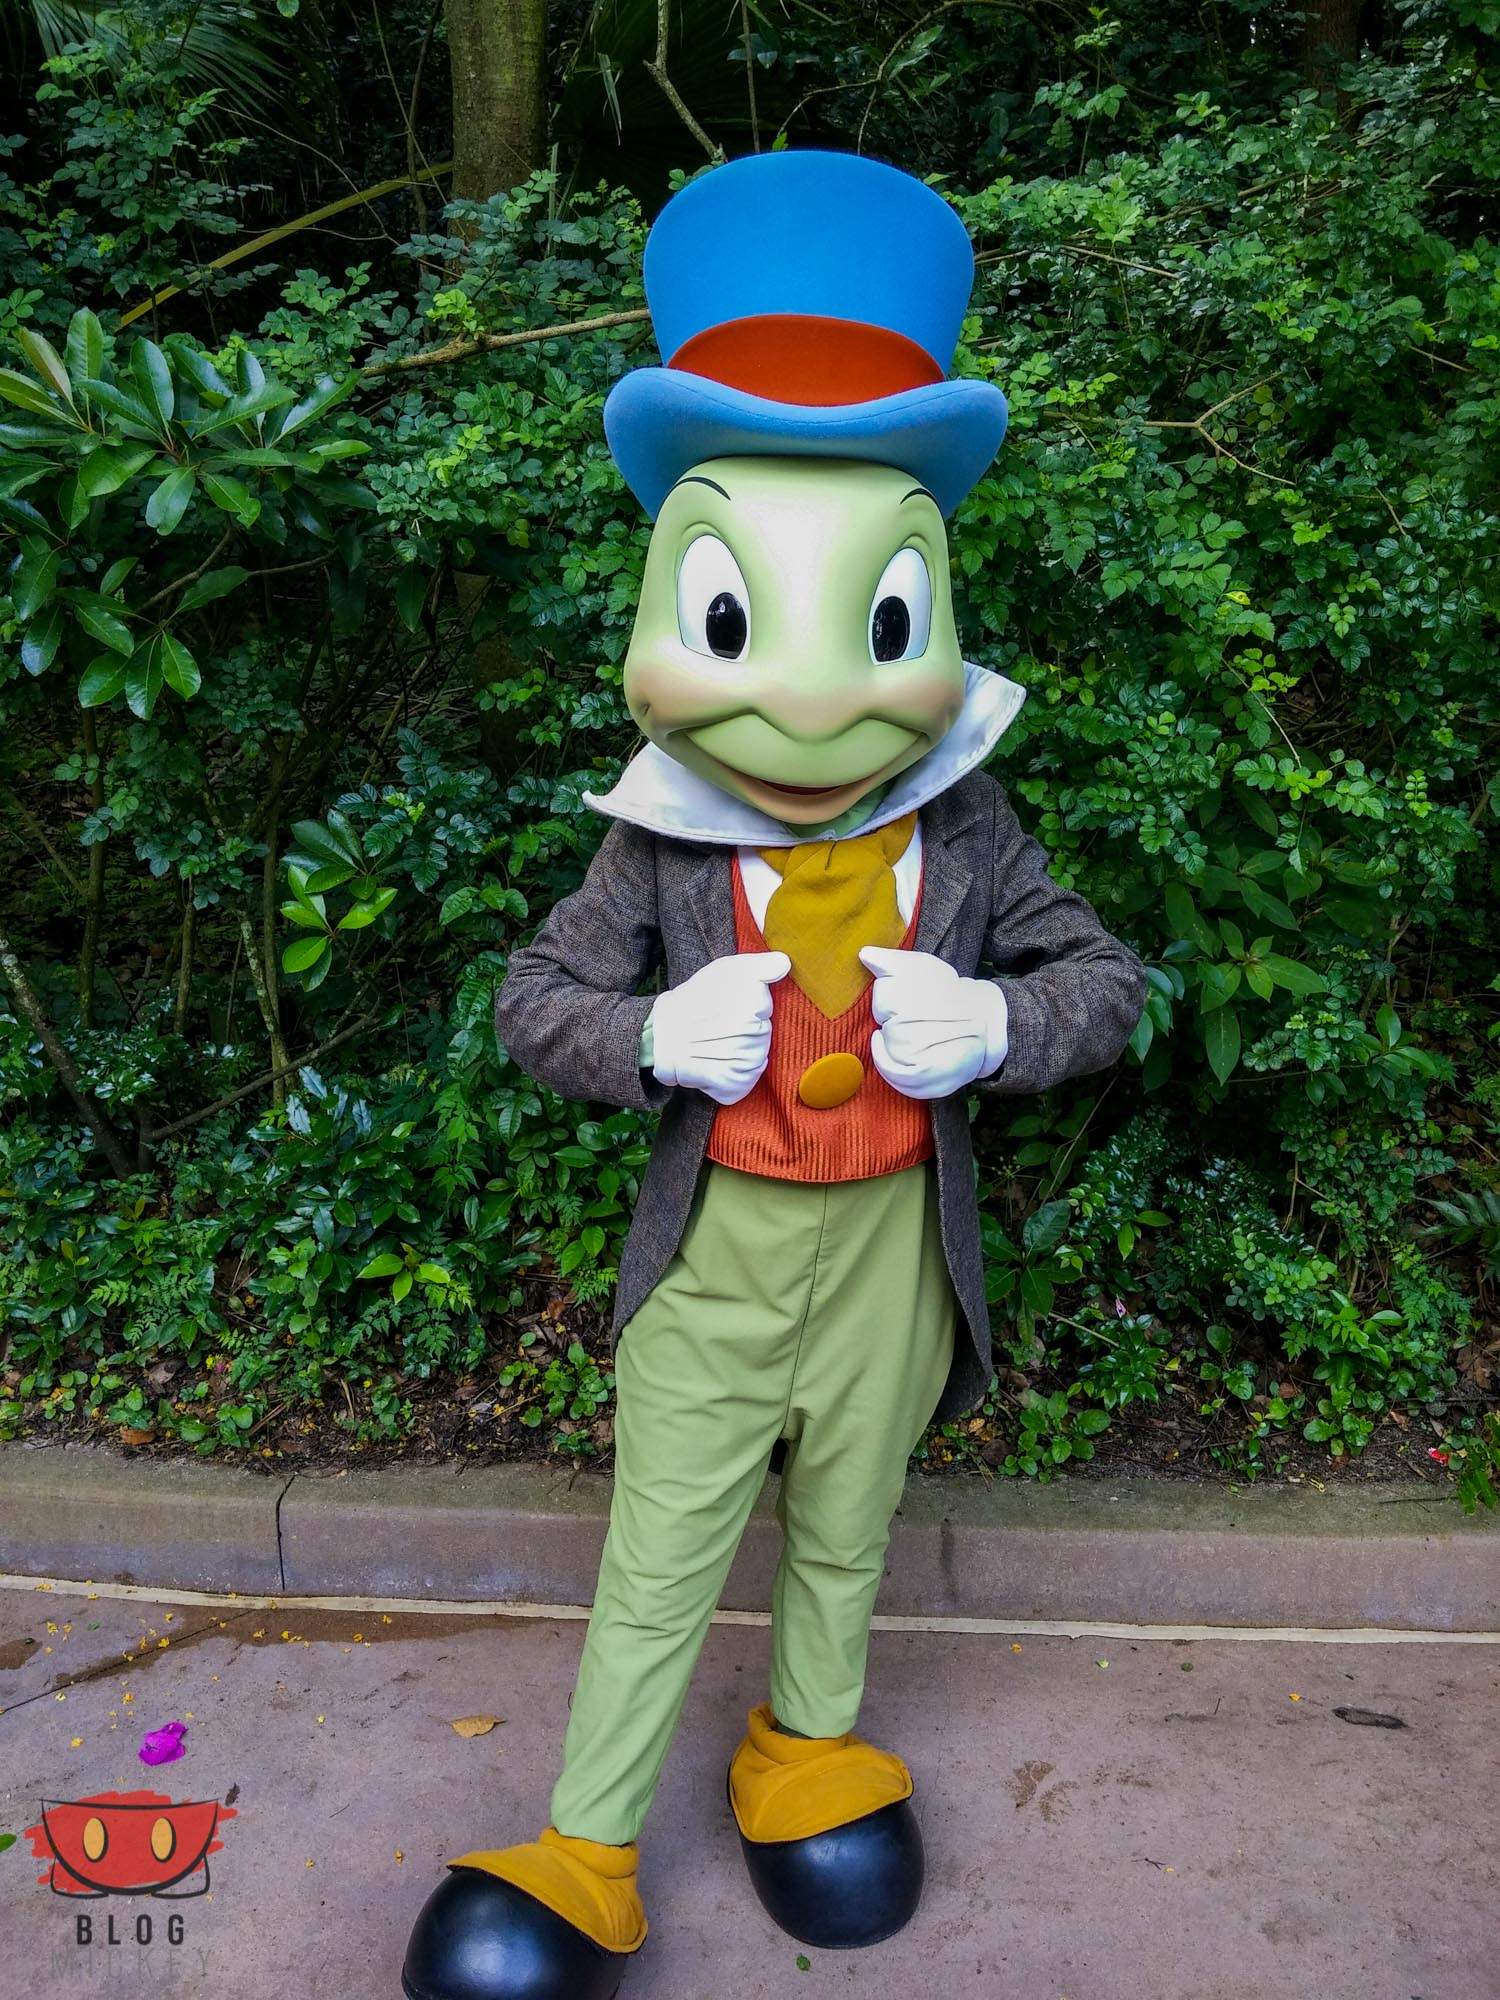 Jiminy Cricket to meet at Rafikis Planet Watch April 17 23 Blog